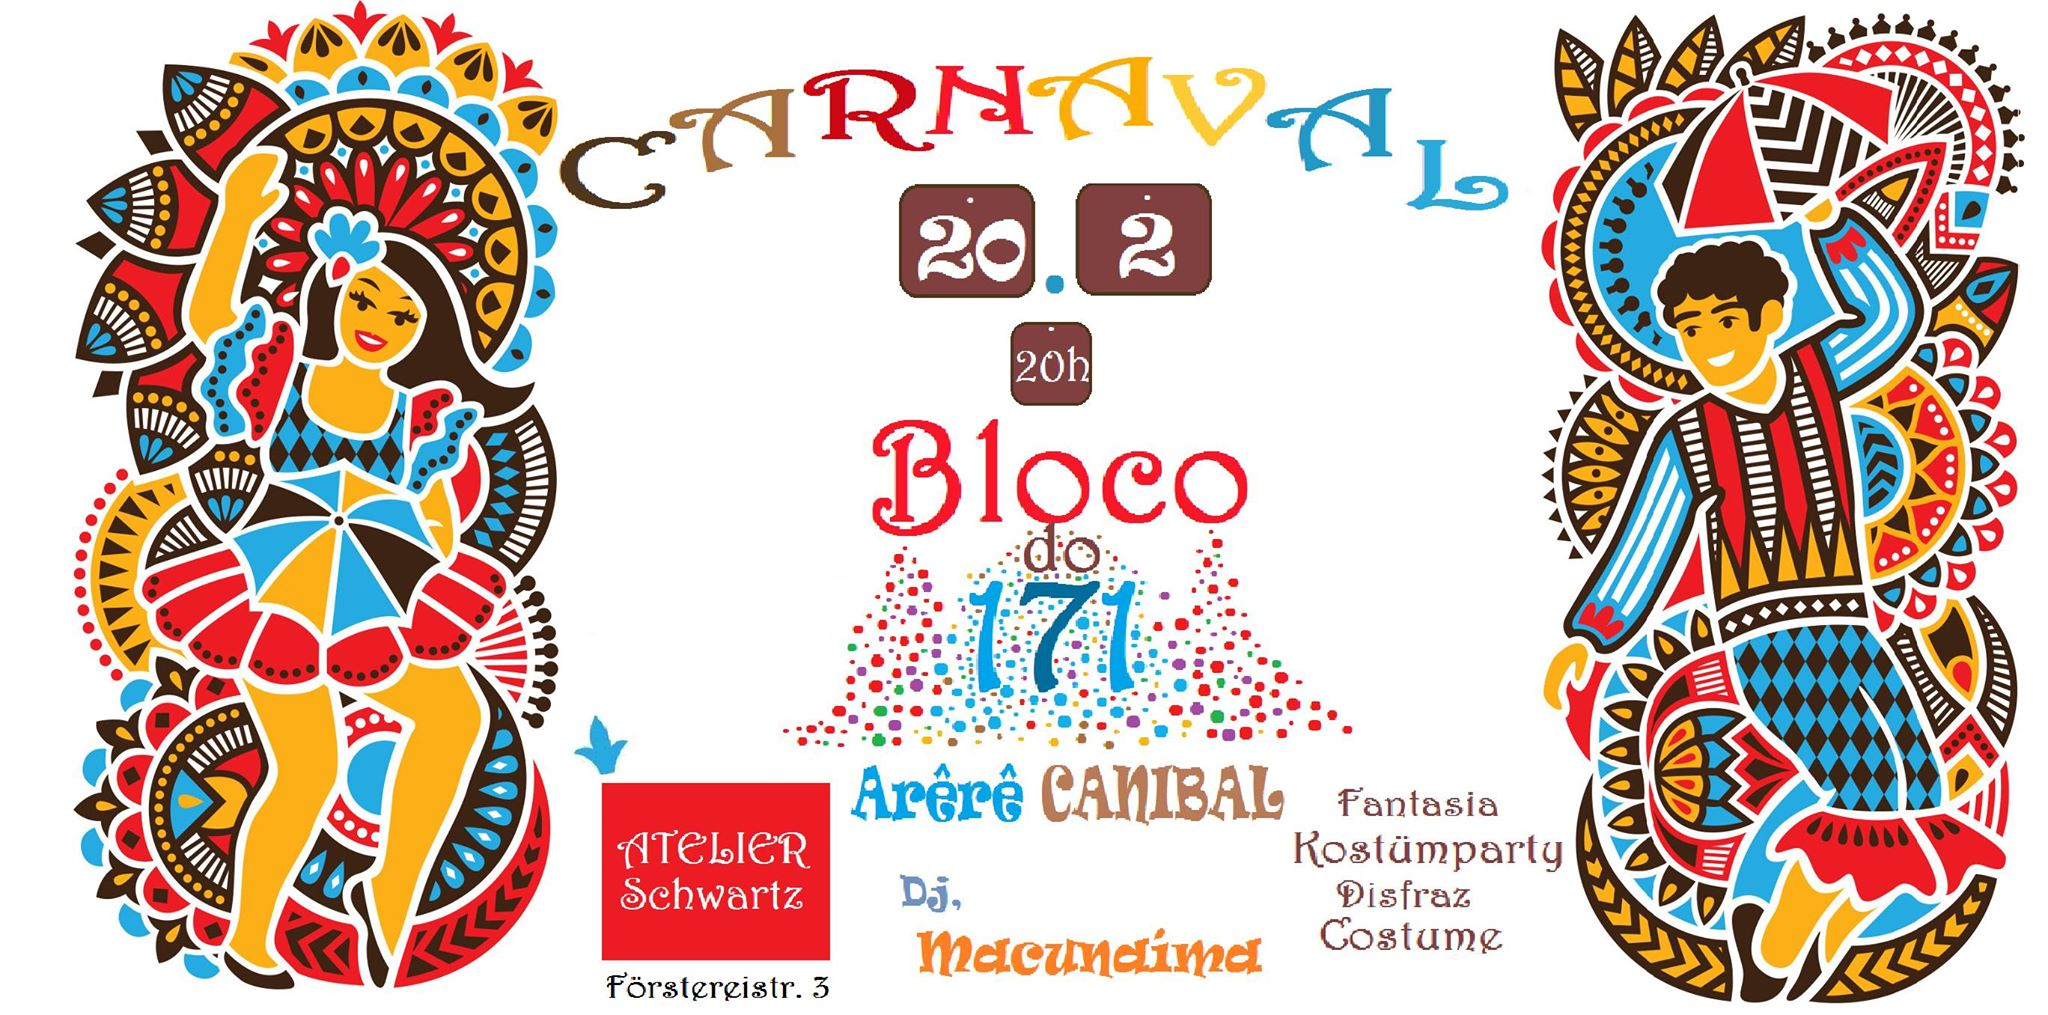 Atelier-schwartz-karneval-party